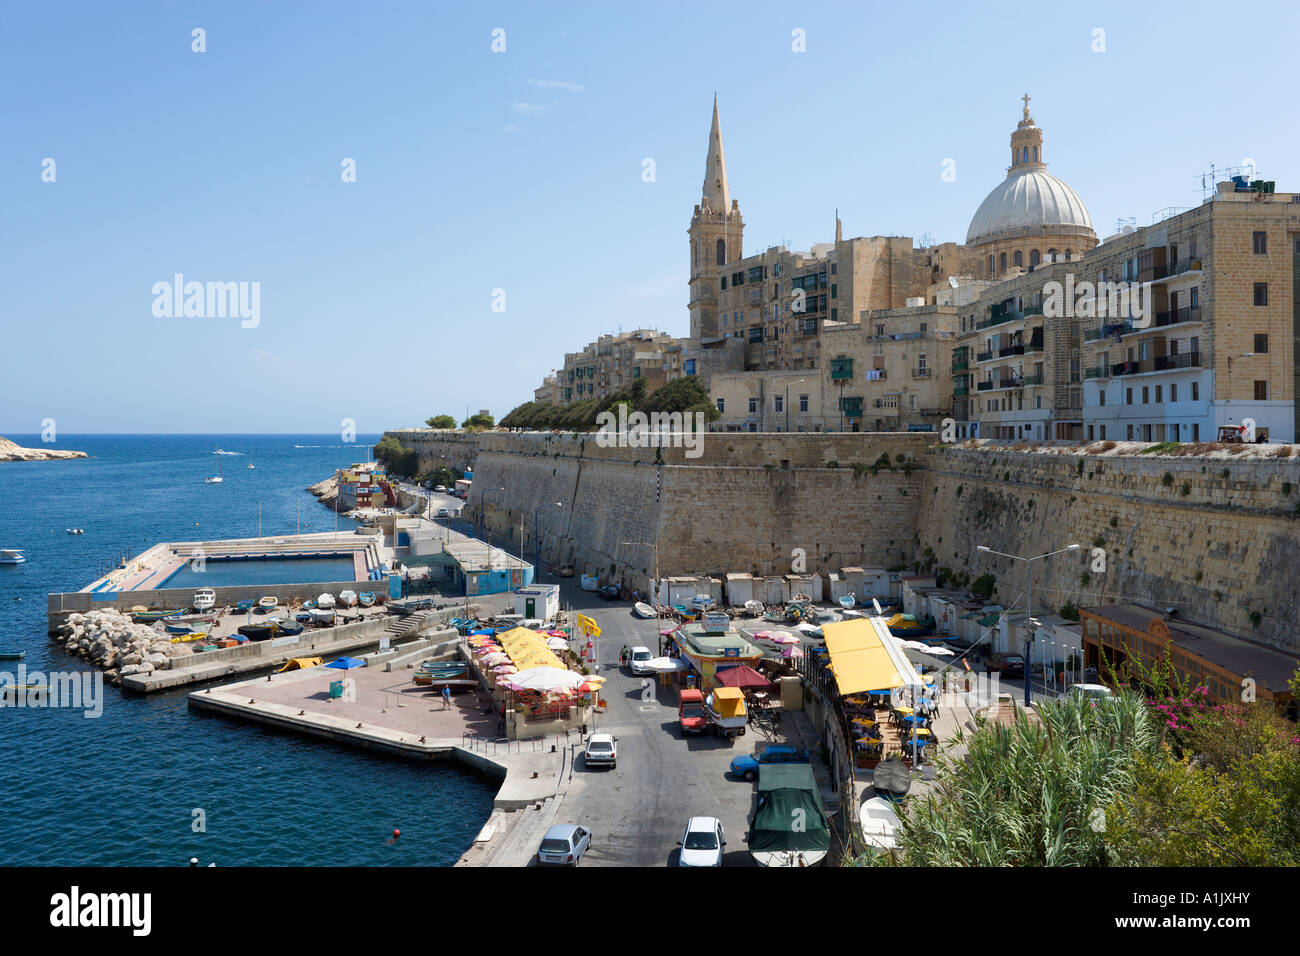 Seafront looking towards the old city with the dome of the Carmelite Church, Valletta, Malta - Stock Image